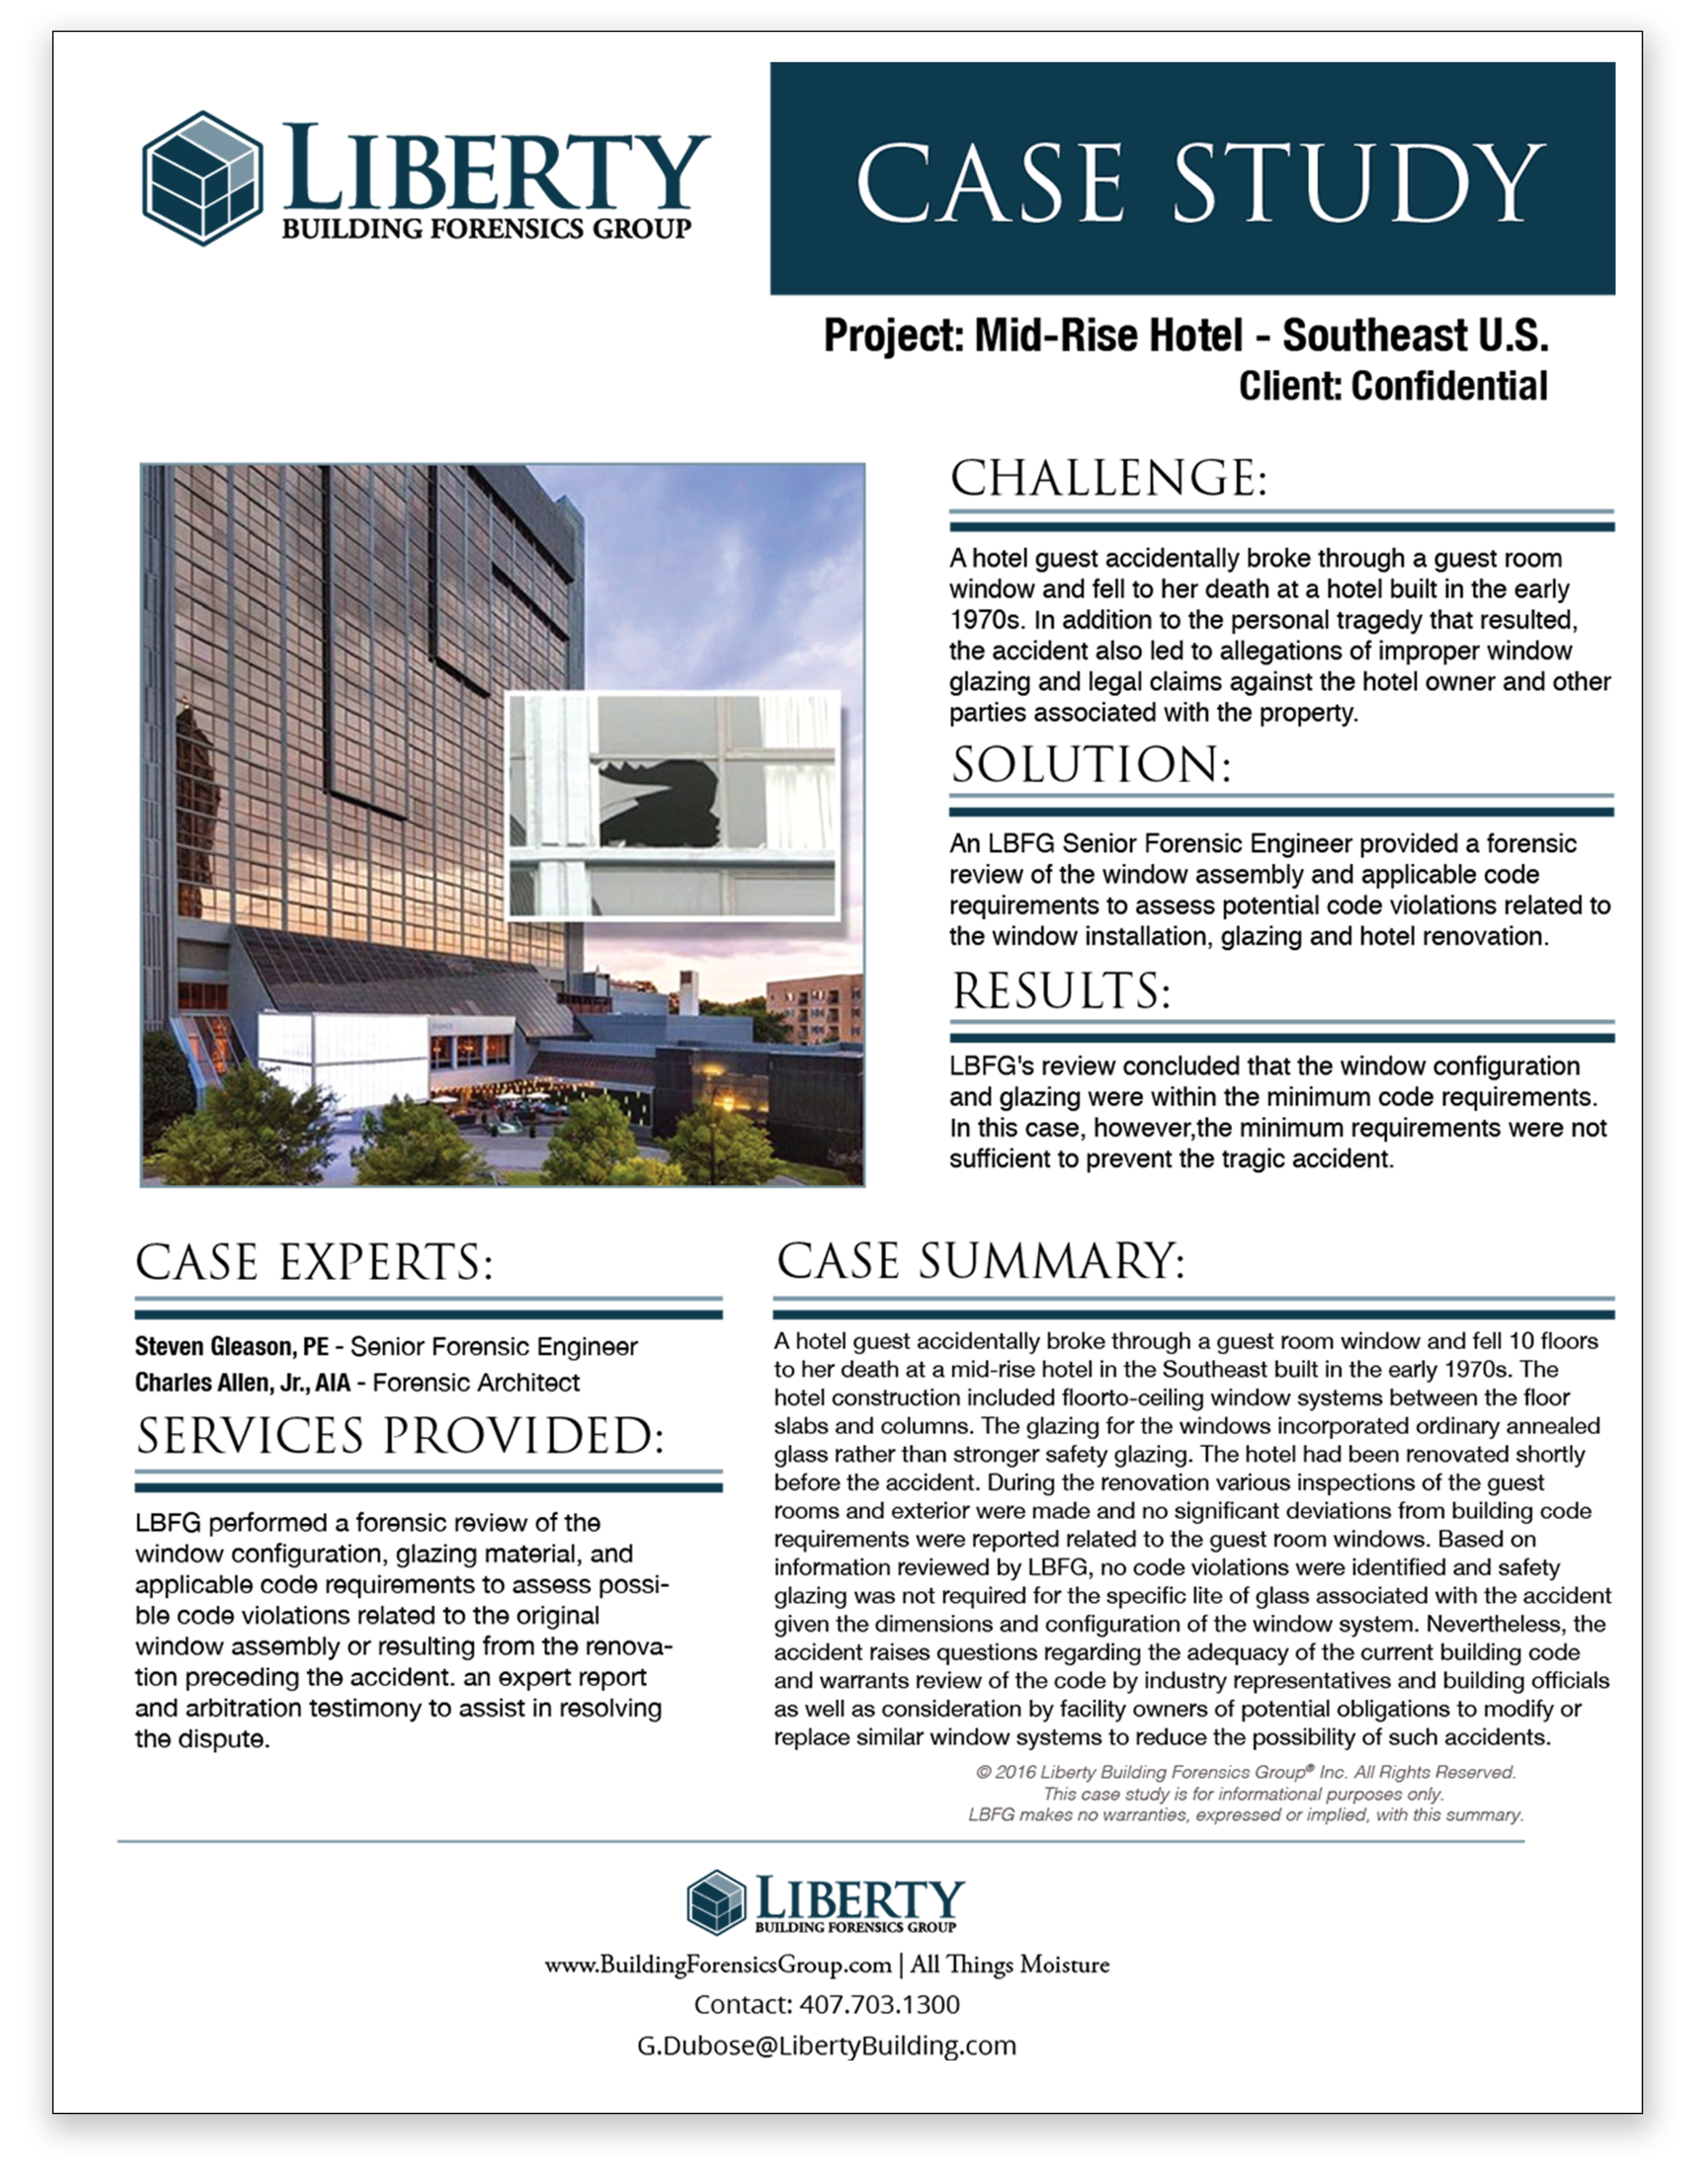 Case Study - Mid-Rise Hotel - SE US 2016@2x.png